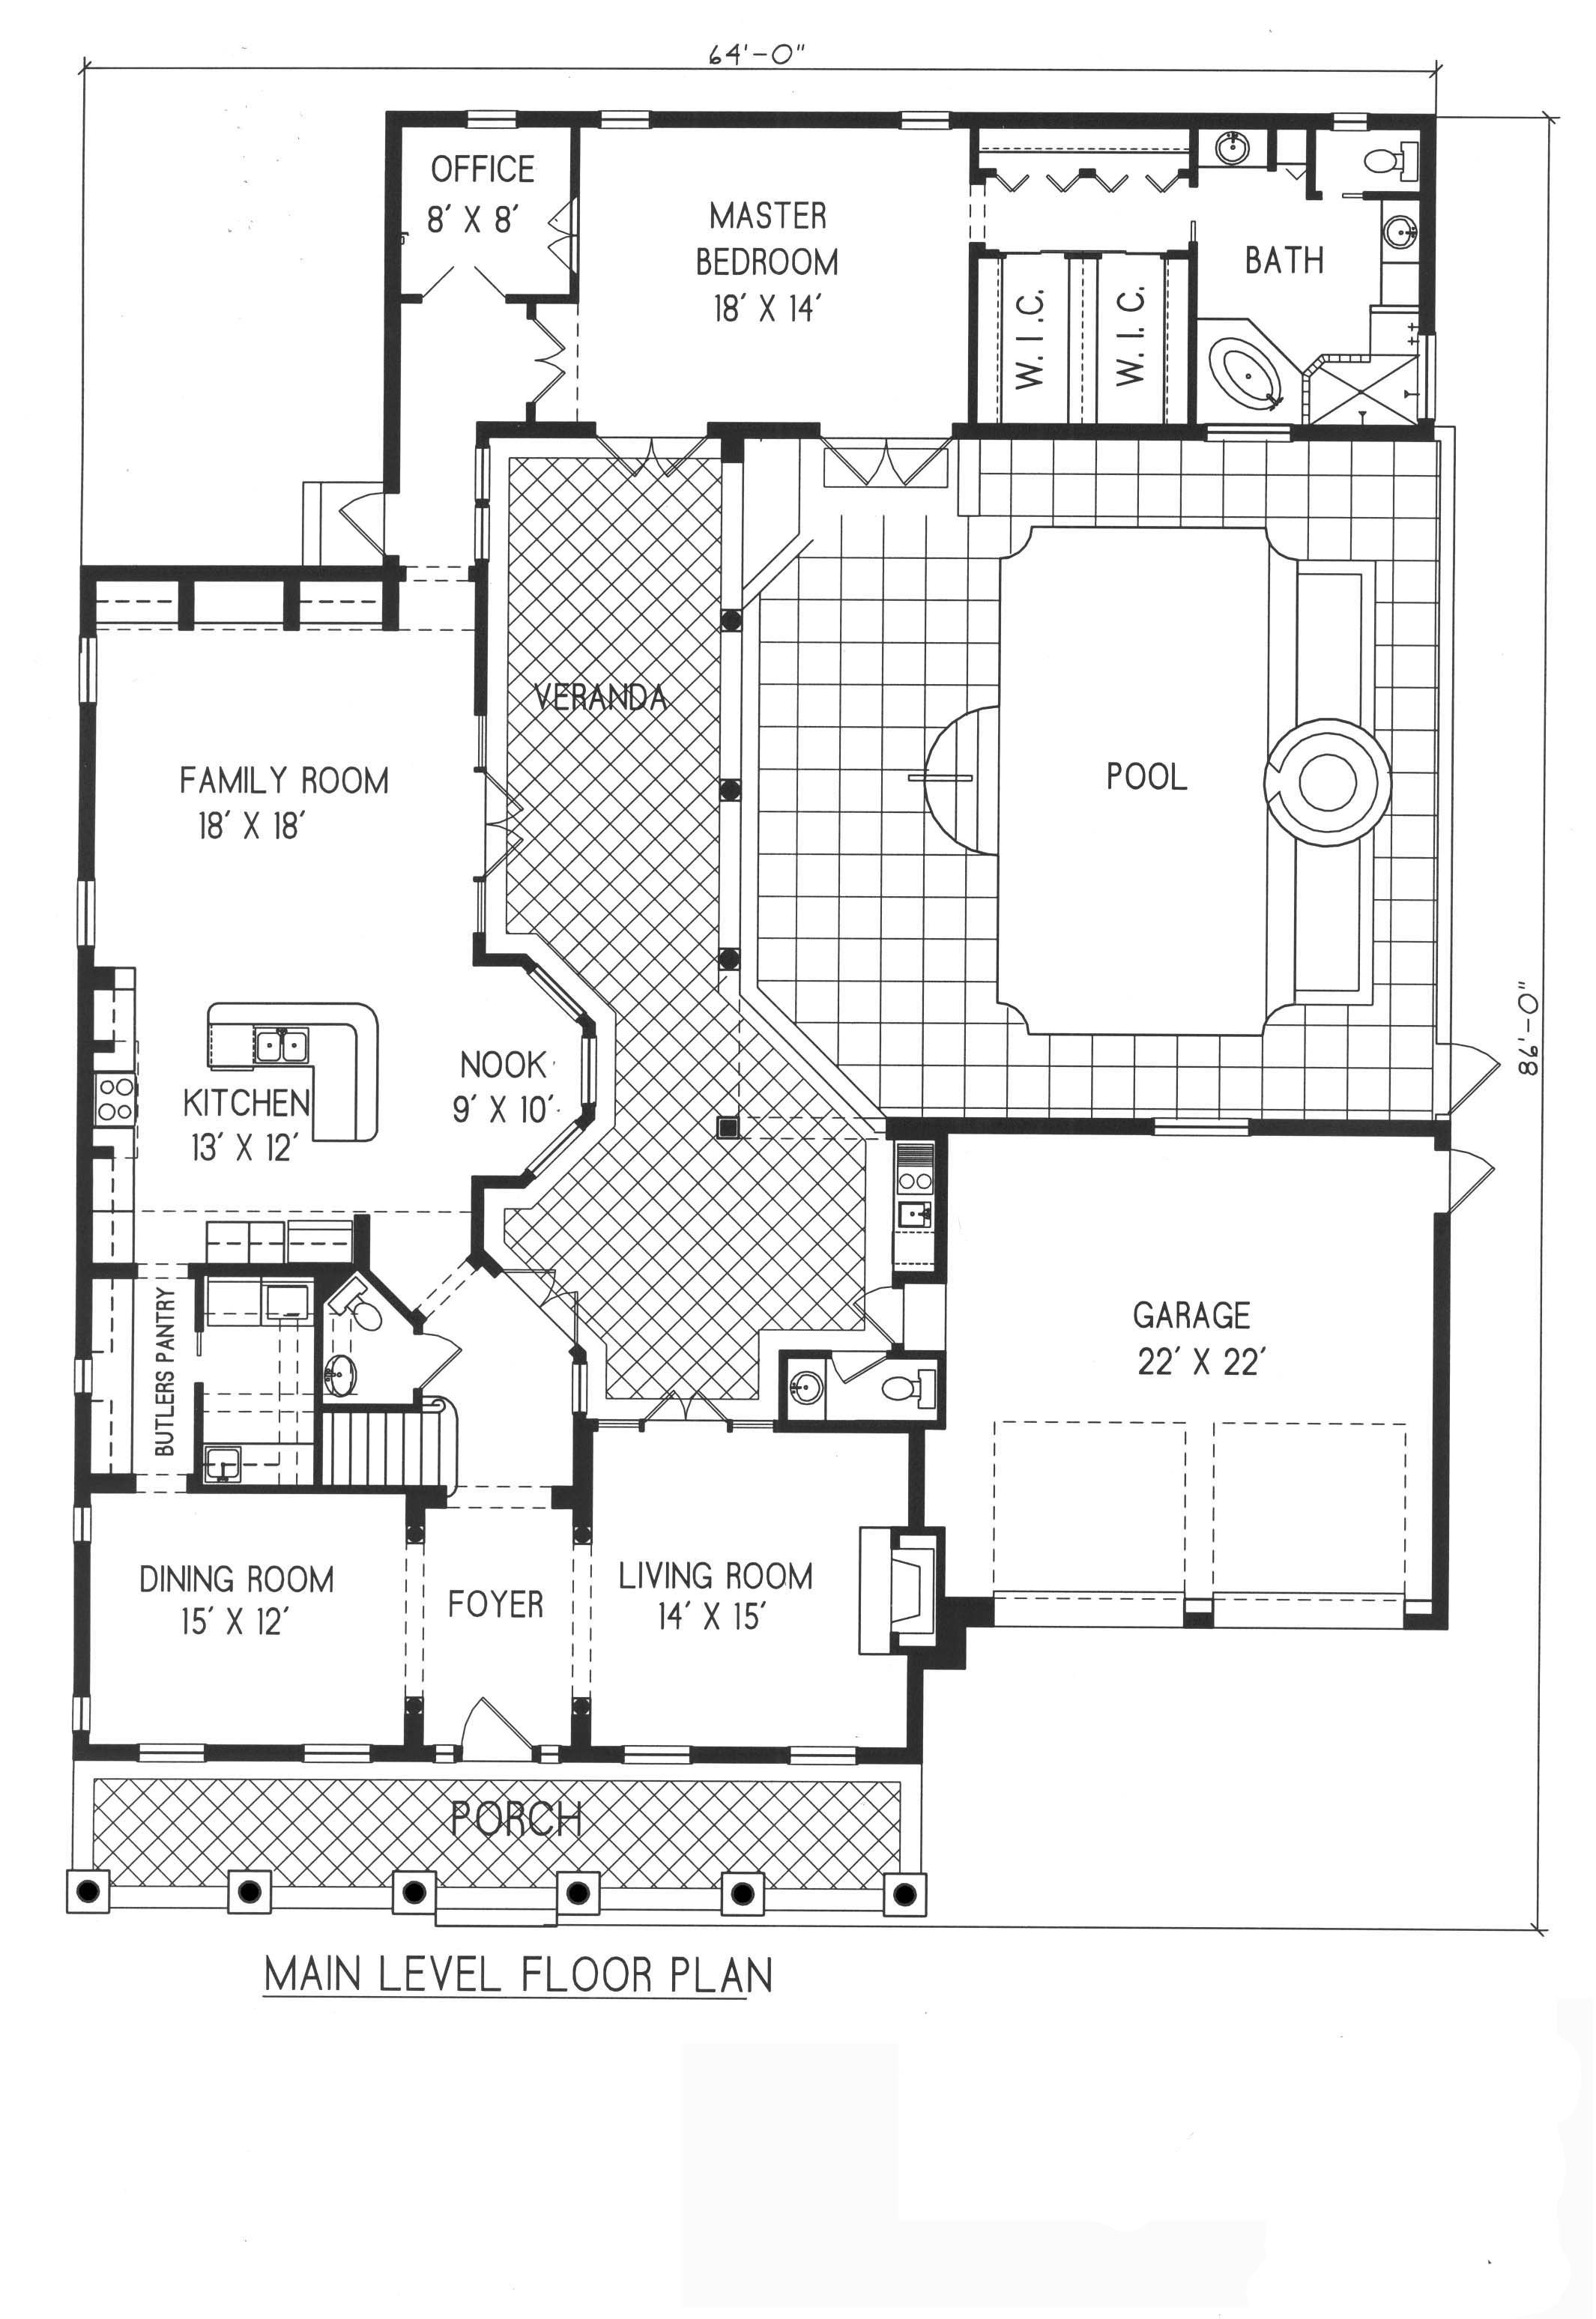 Plan 1 1100 American Style Home With A Living S F Of 3283 5175 S F Total 3 Full Baths And Mediterranean Style House Plans House Plans Floor Plan Design